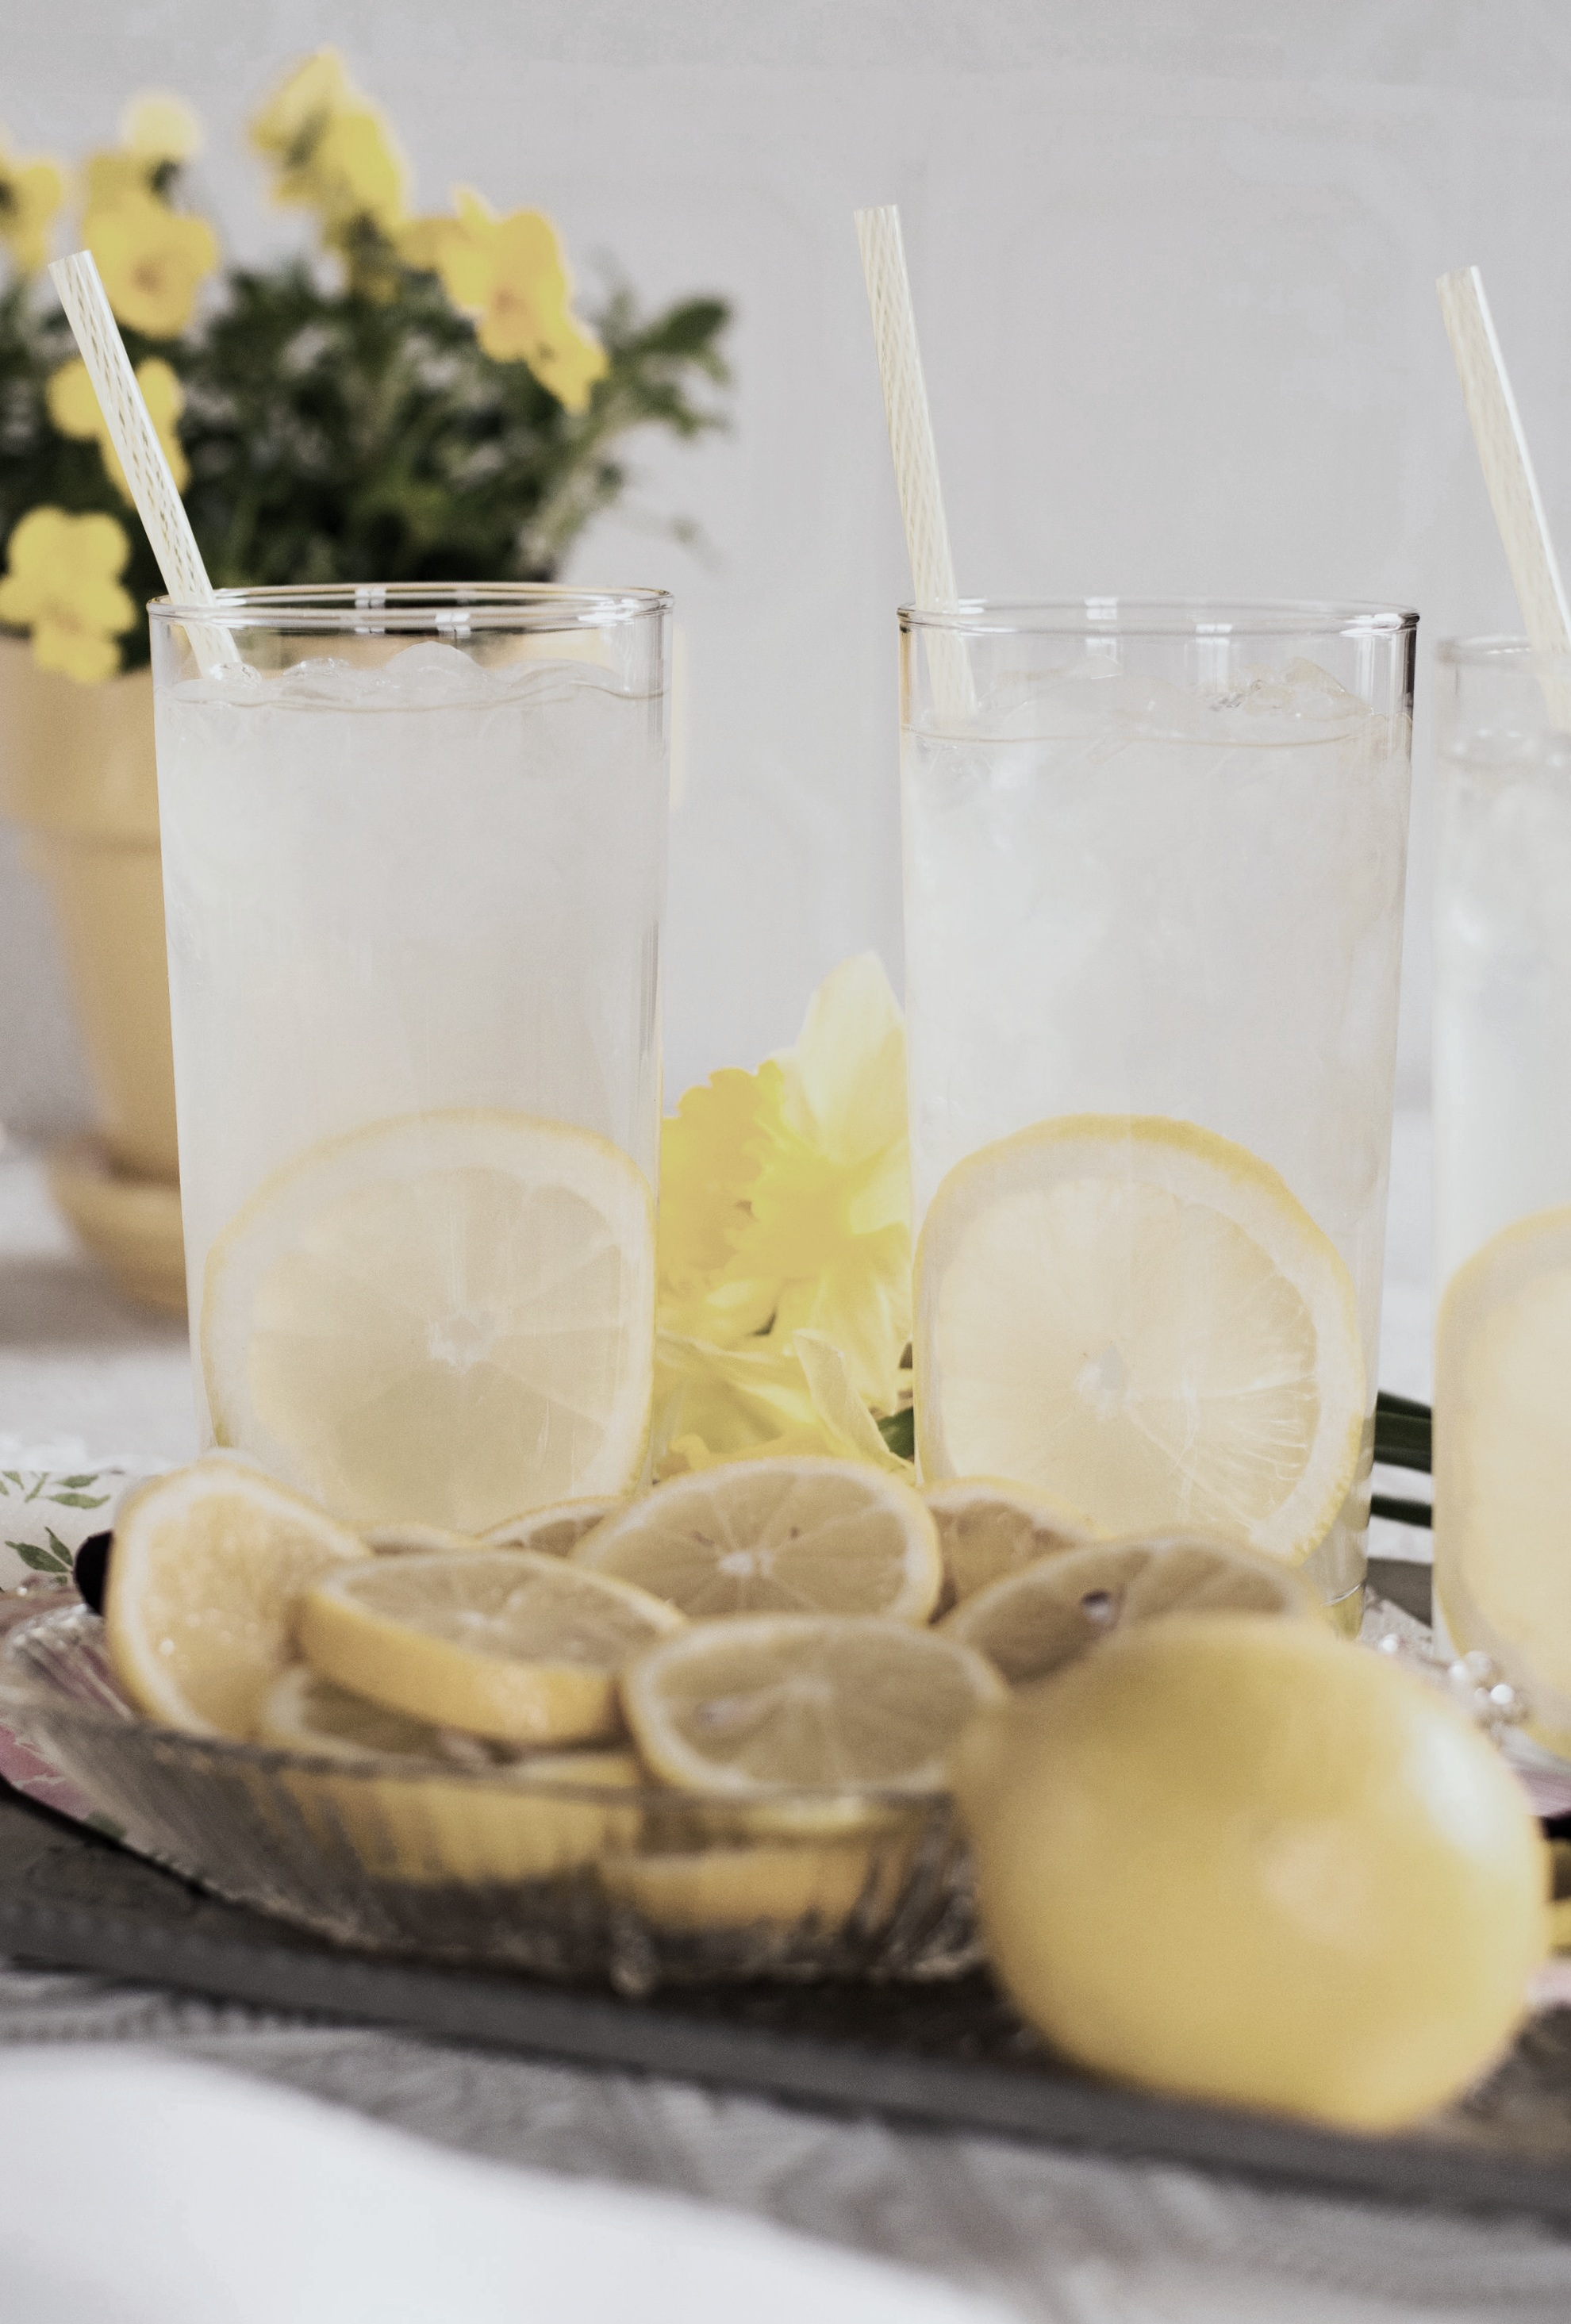 Lemon water is excellent for your health.